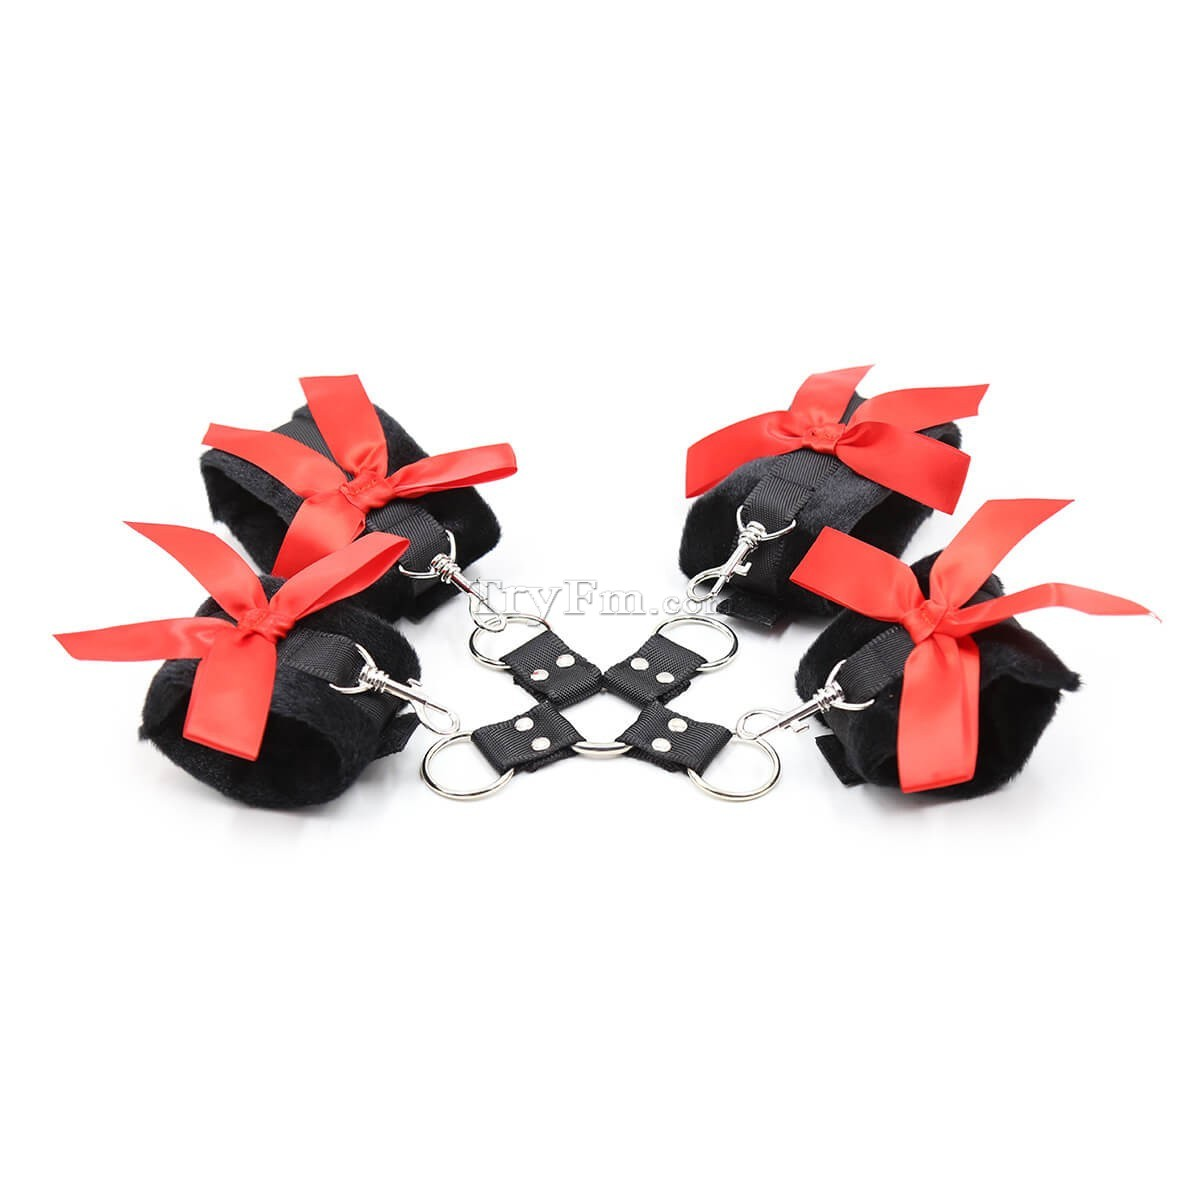 6-cute-bowknot-cuffs-for-hogtie6.jpg